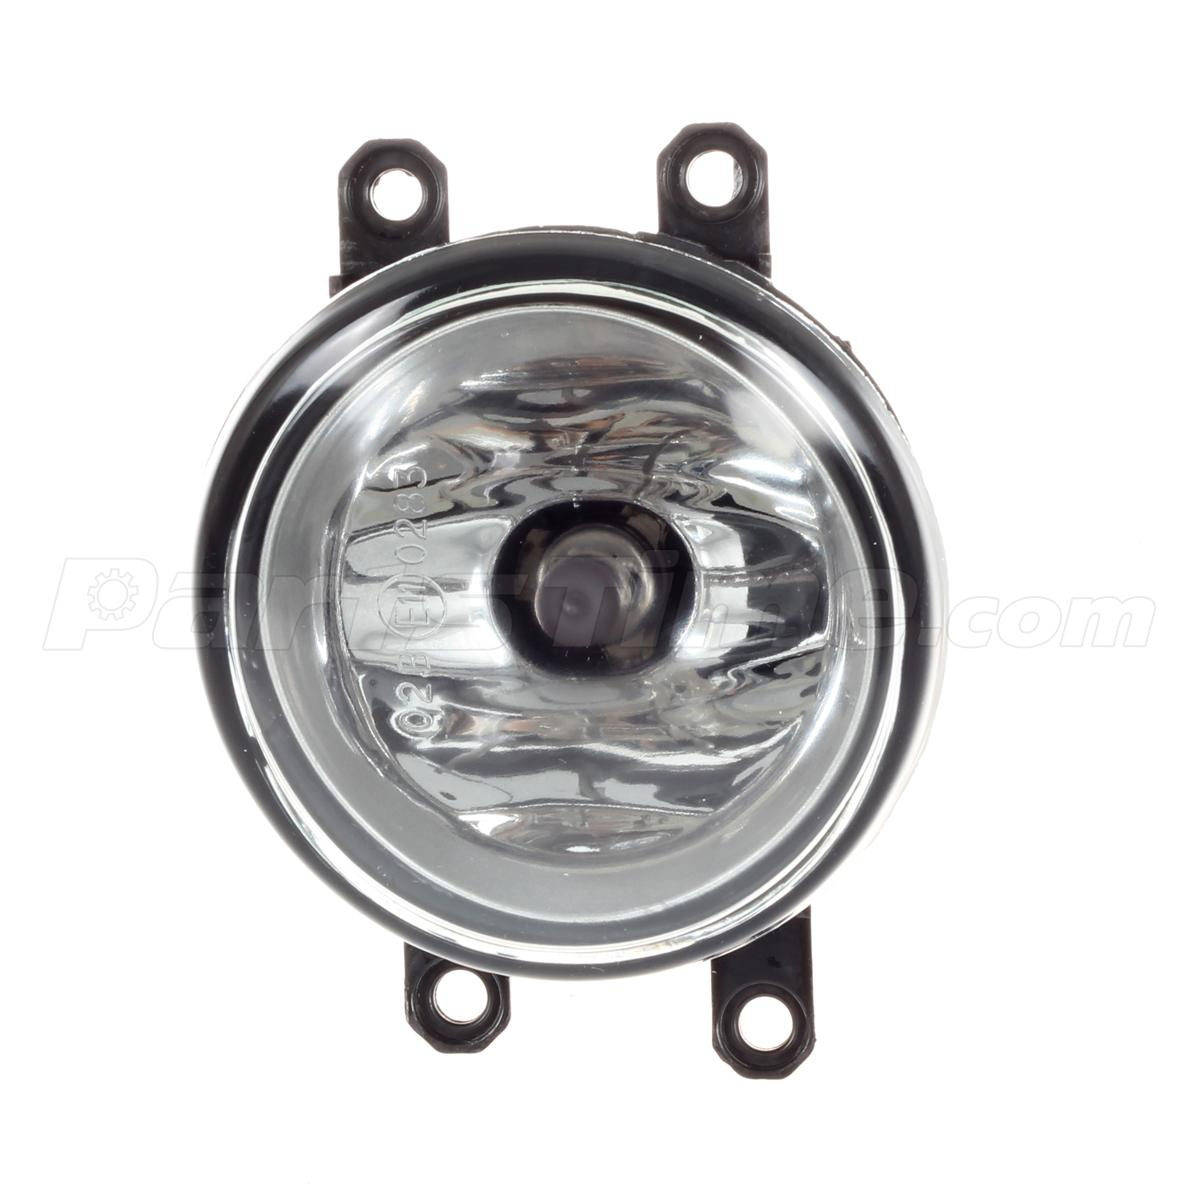 Oem Fog Lights For 2015 Toyota Camry Se | Autos Post